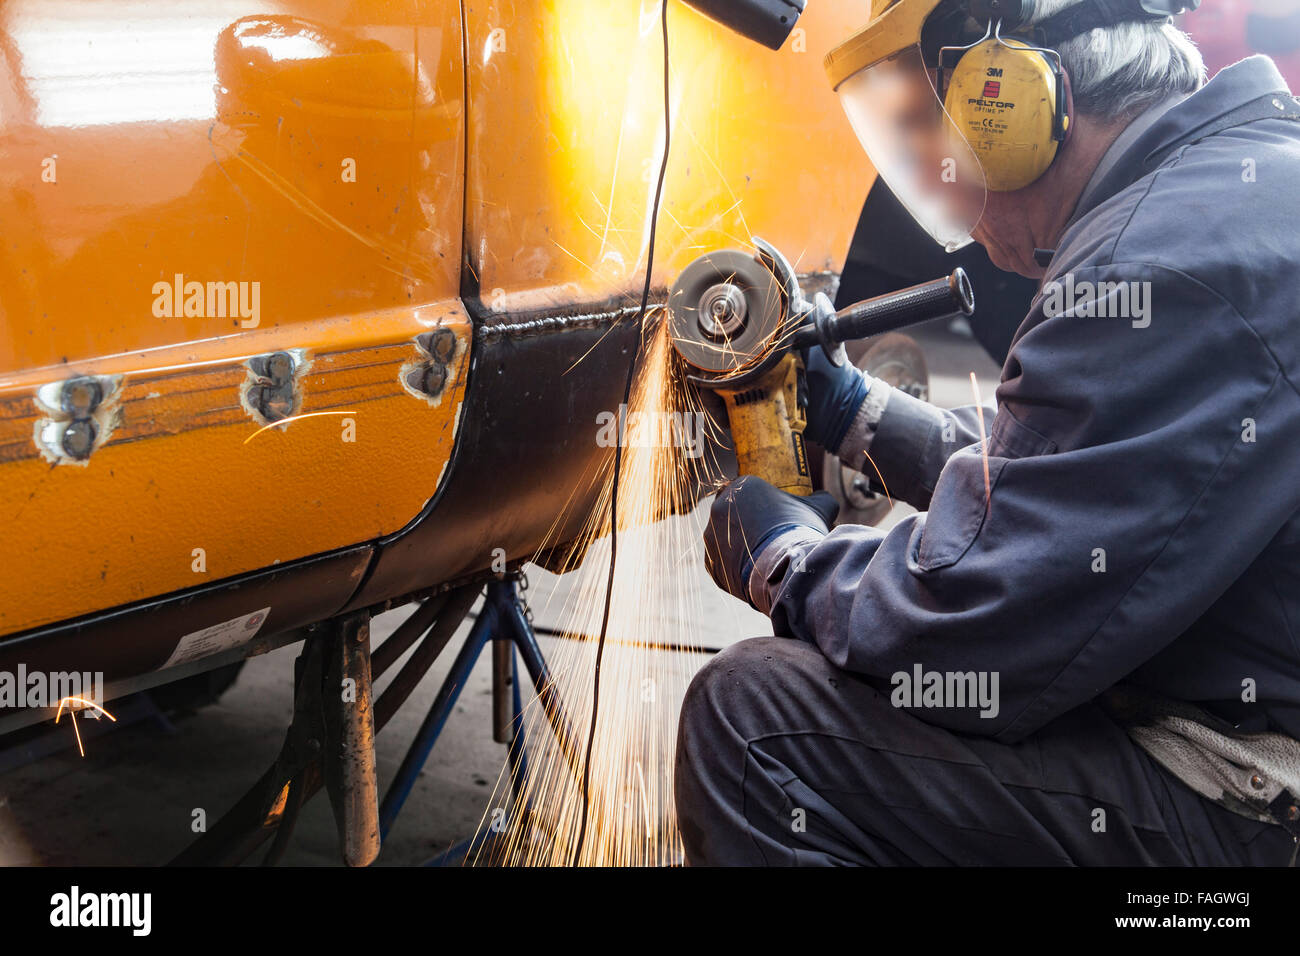 Coachbuilder restores a classic car VW Karmann Ghia. Welded seams are processed with angle grinder. - Stock Image